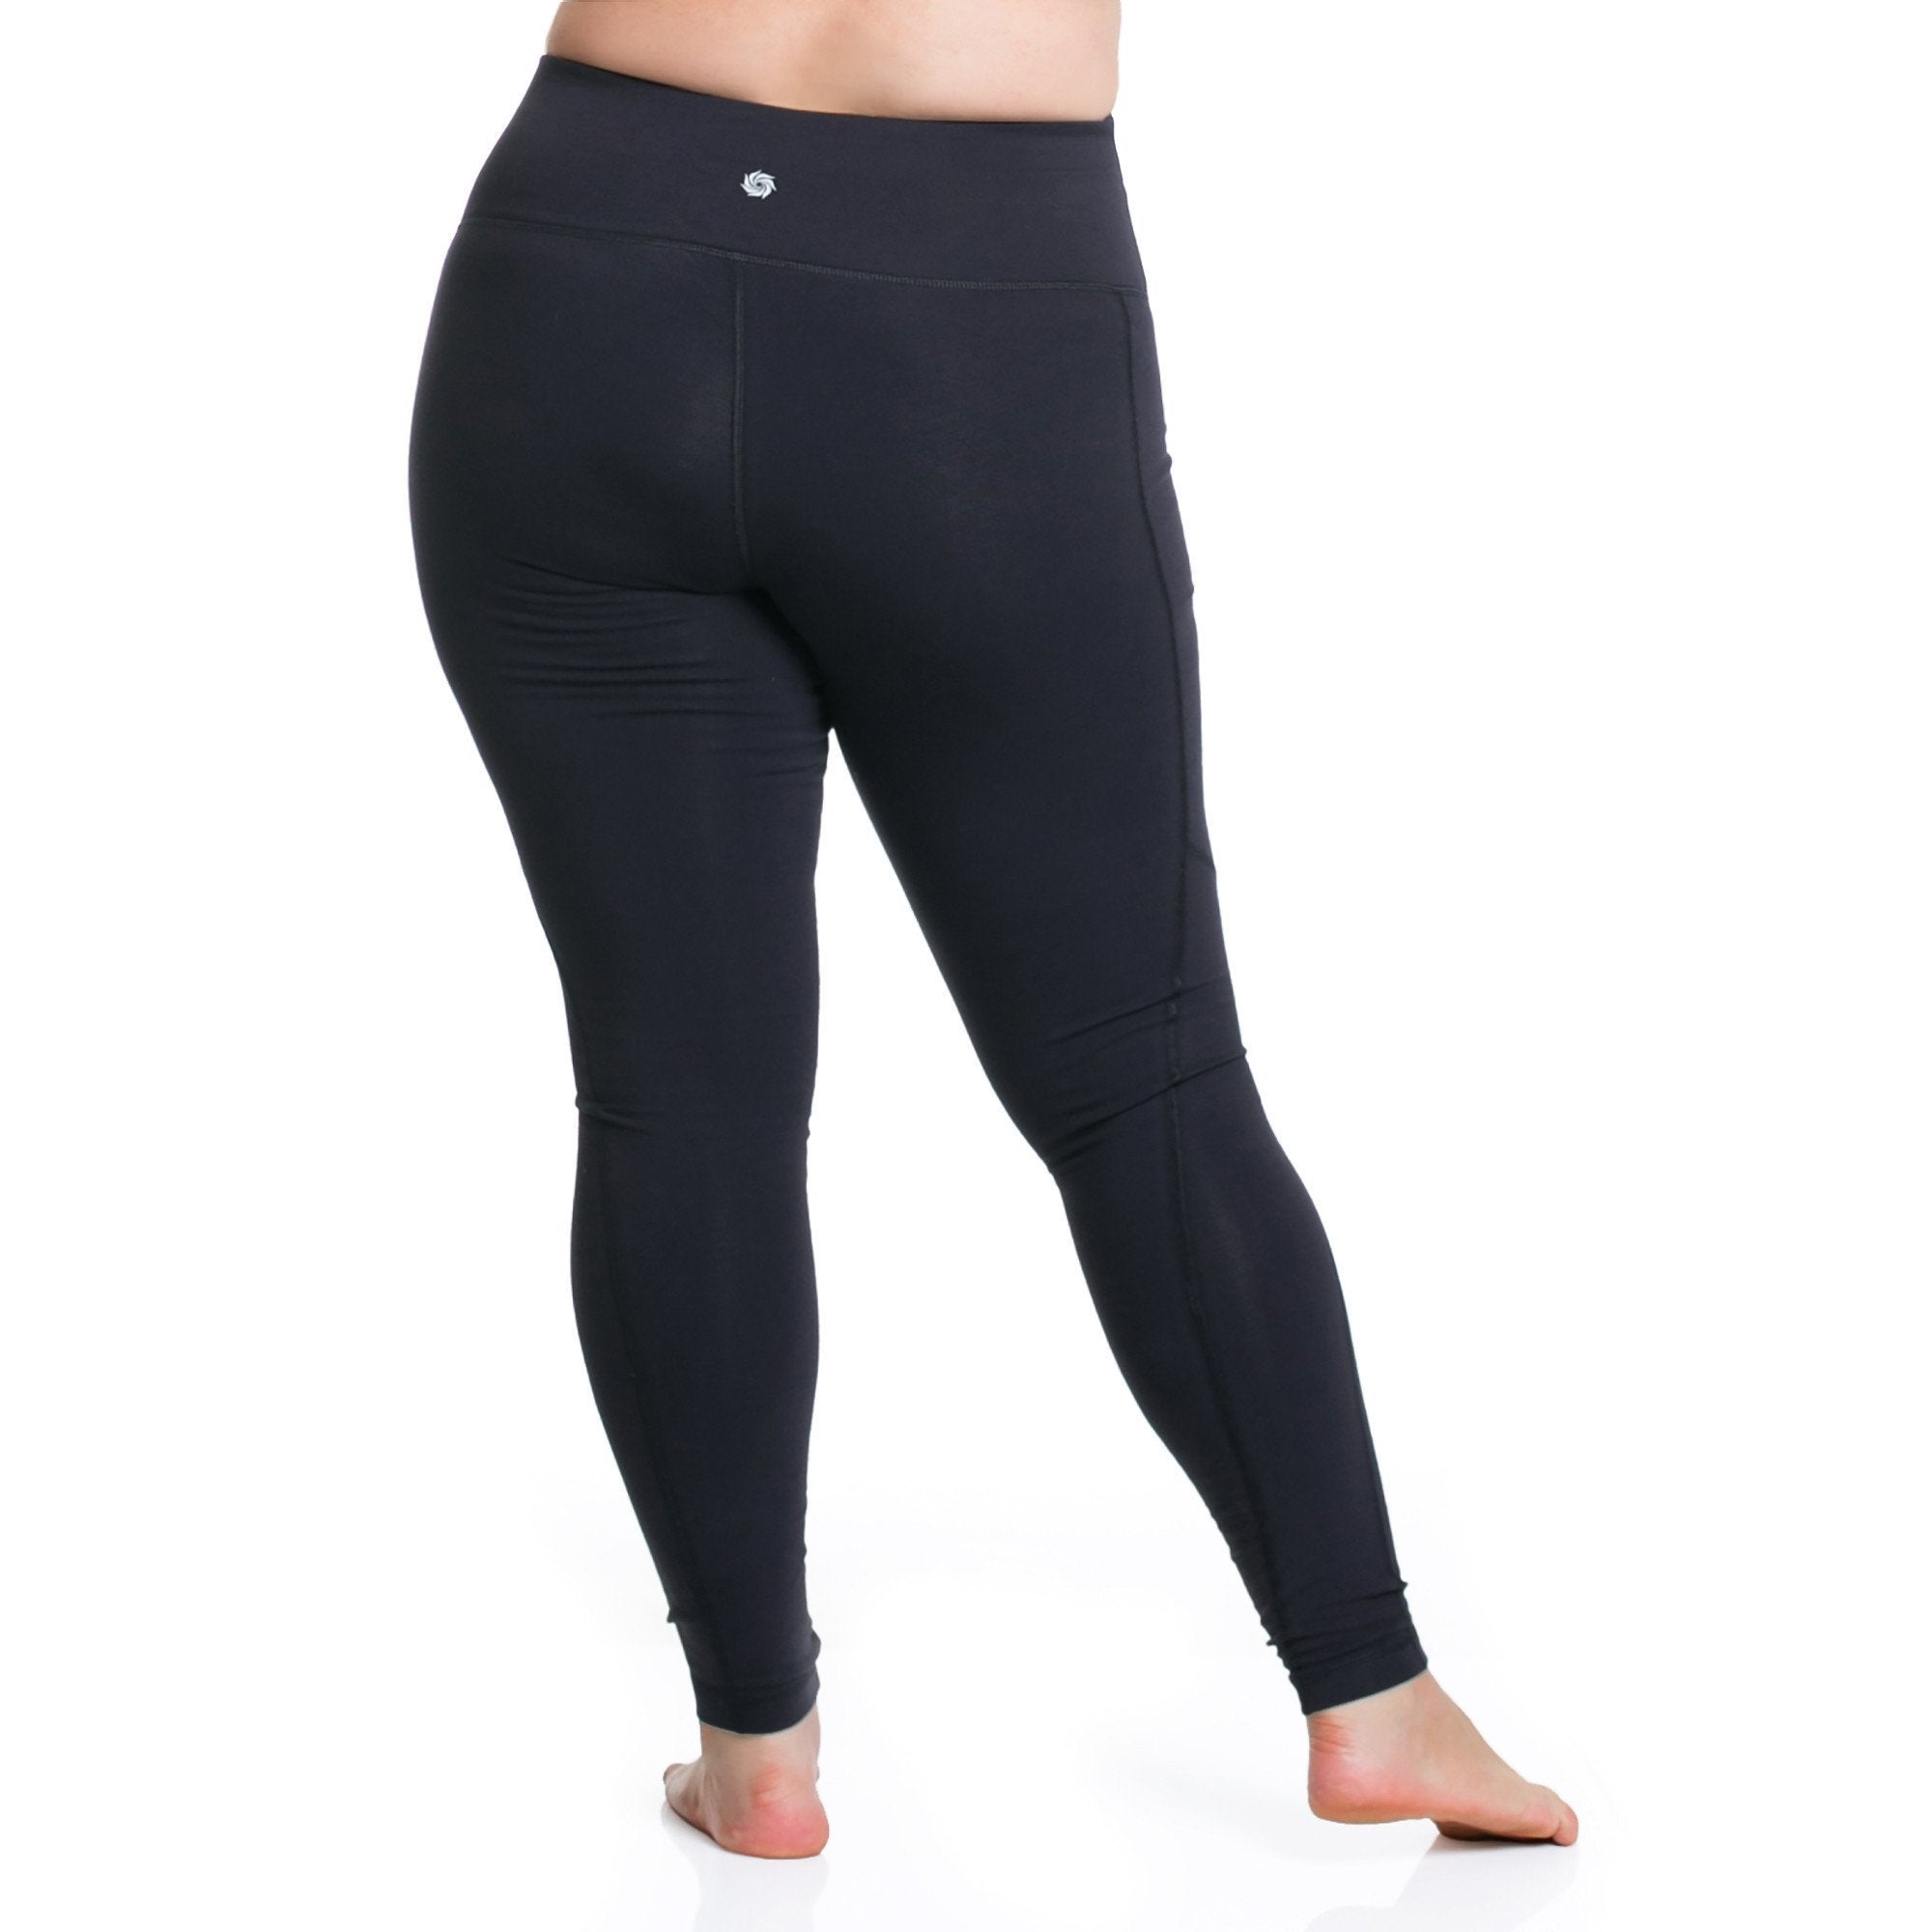 c1d4951b19d Rainbeau Curves - Curve Basix Compression Legging - Plus Size ...